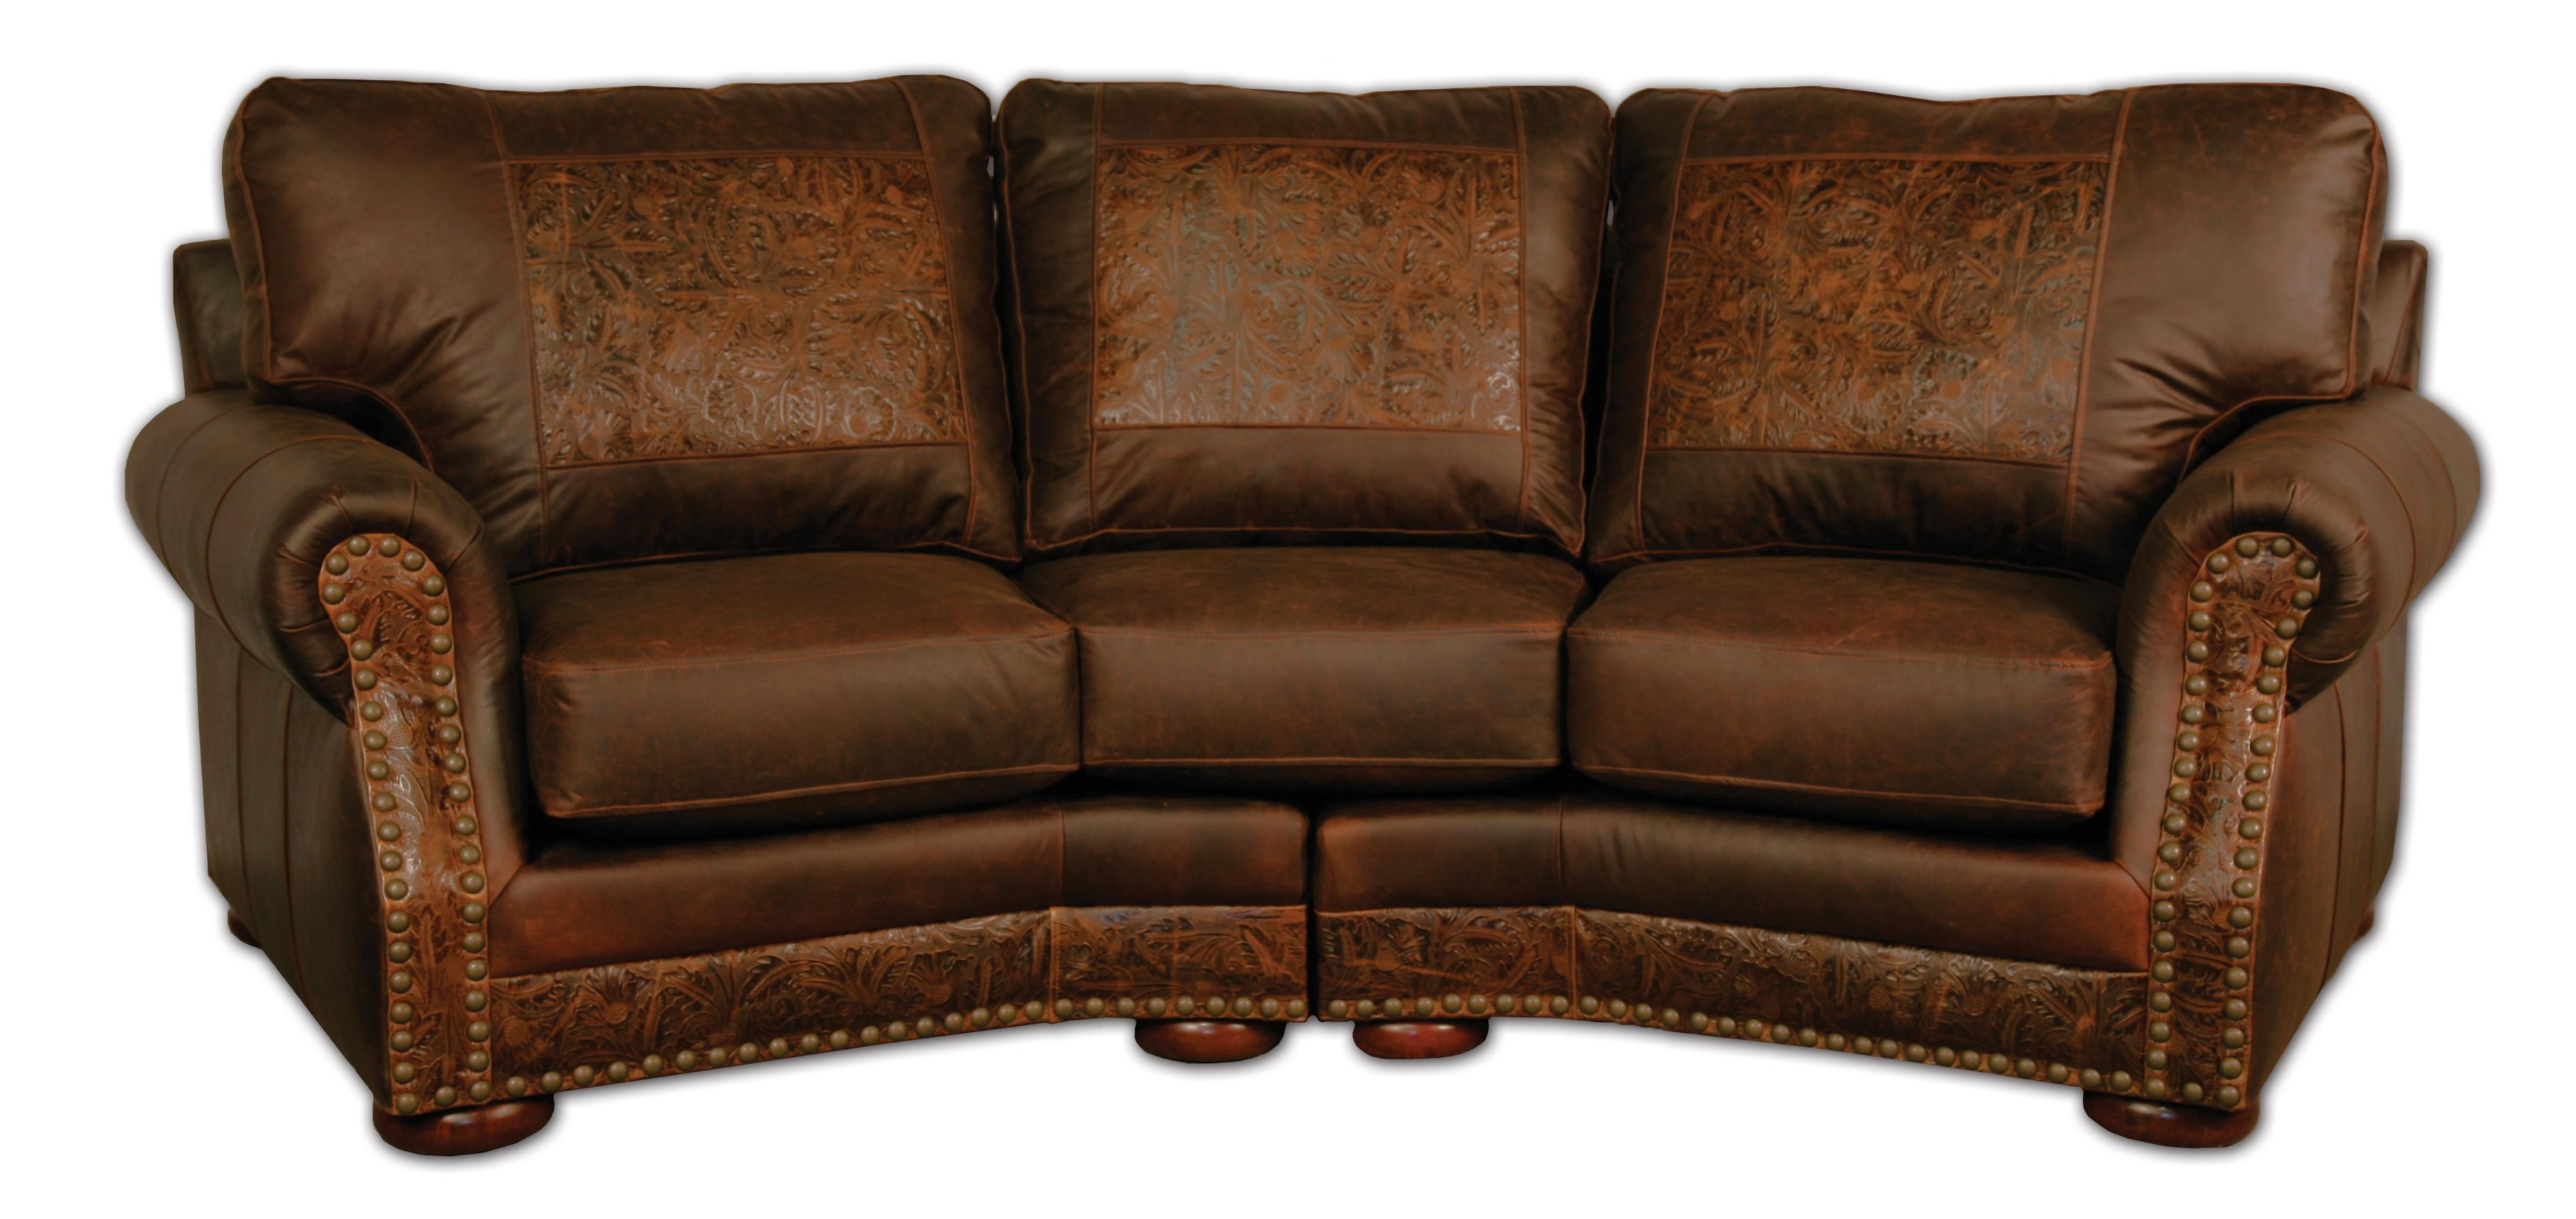 Cameron Ranch Conversation Sofa Dejavu Holster & Cosmo Tooled Leather In Cameron Sofa Chairs (View 15 of 25)